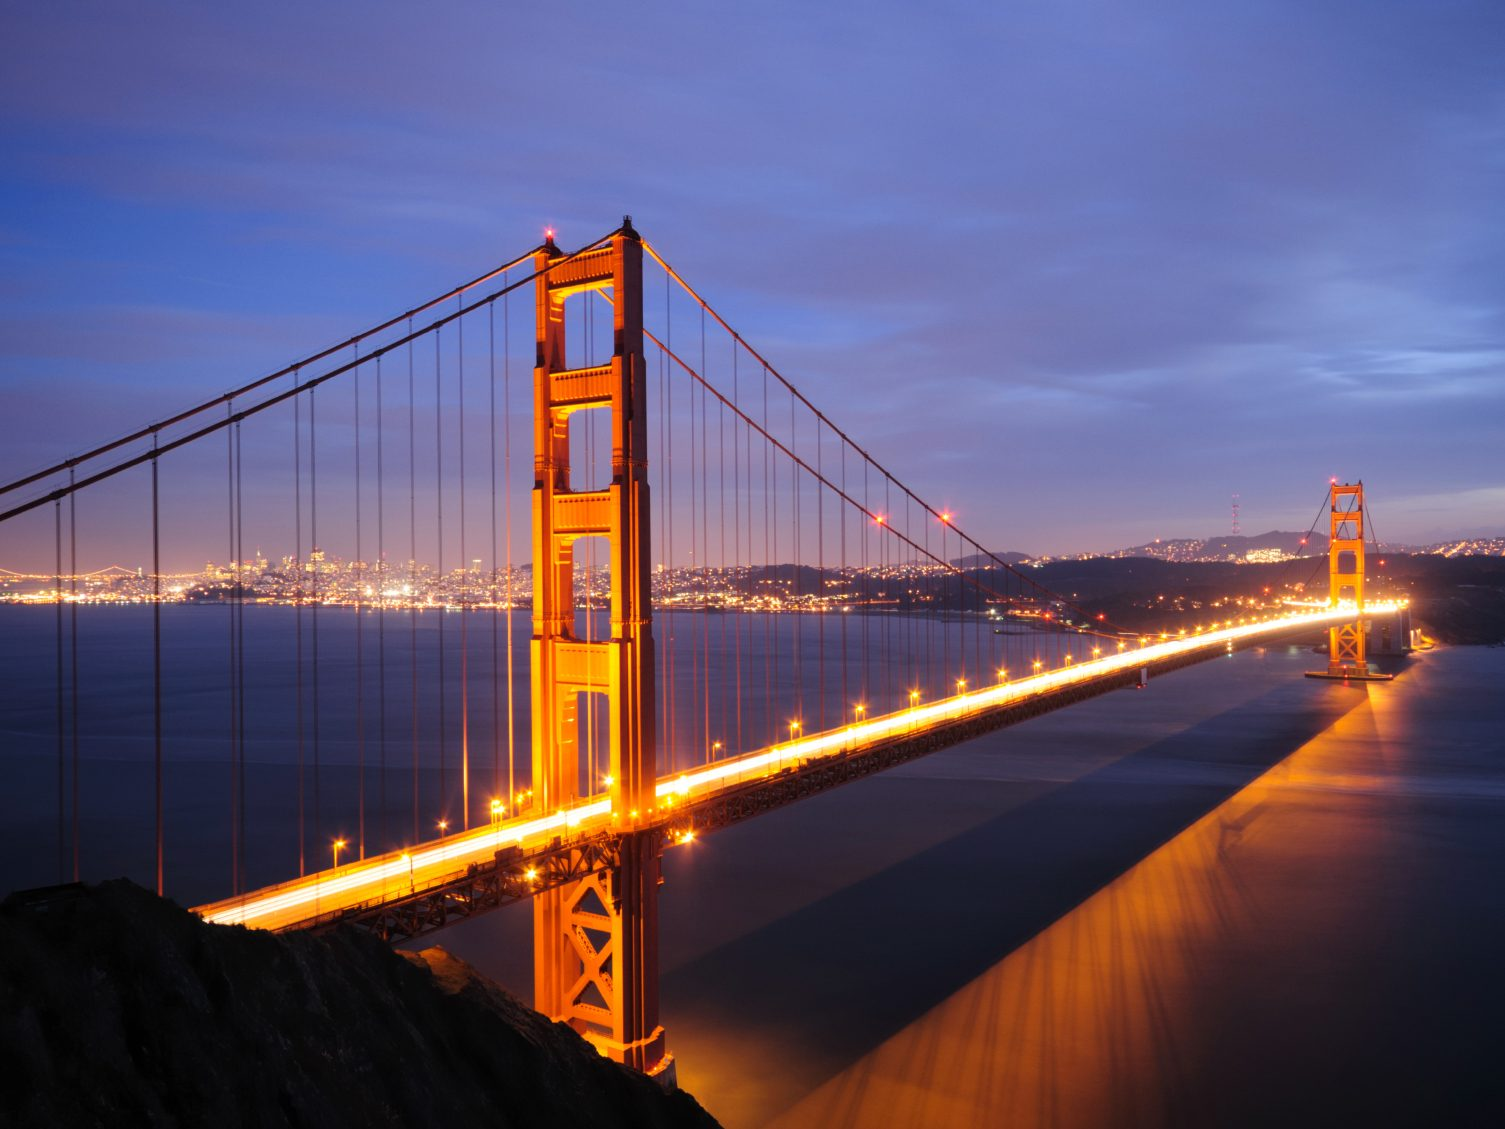 2. Le Golden Gate Bridge, San Francisco